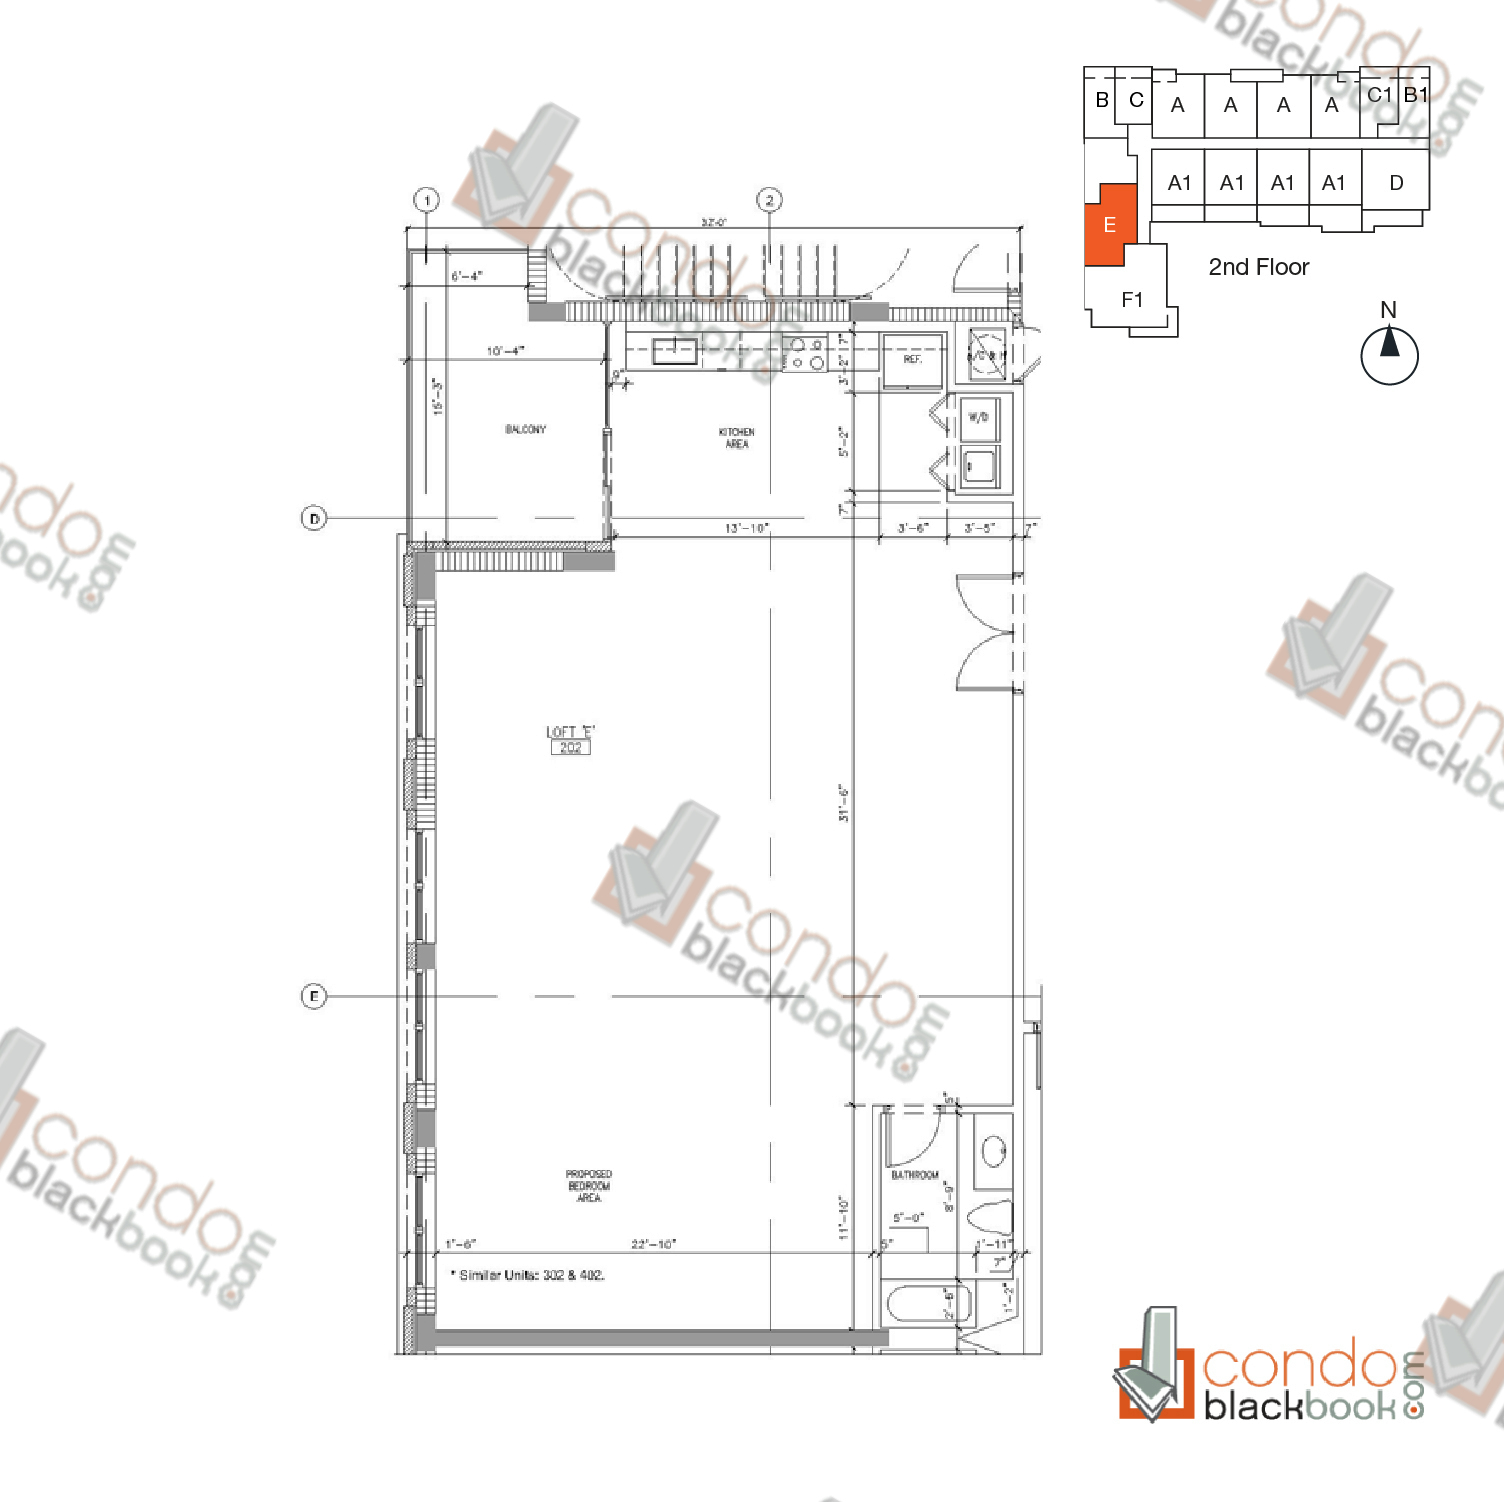 Floor plan for Parc Lofts Arts & Entertainment District Miami, model Loft E & F, line 201, 202, 2/1 bedrooms, 1.605 sq ft